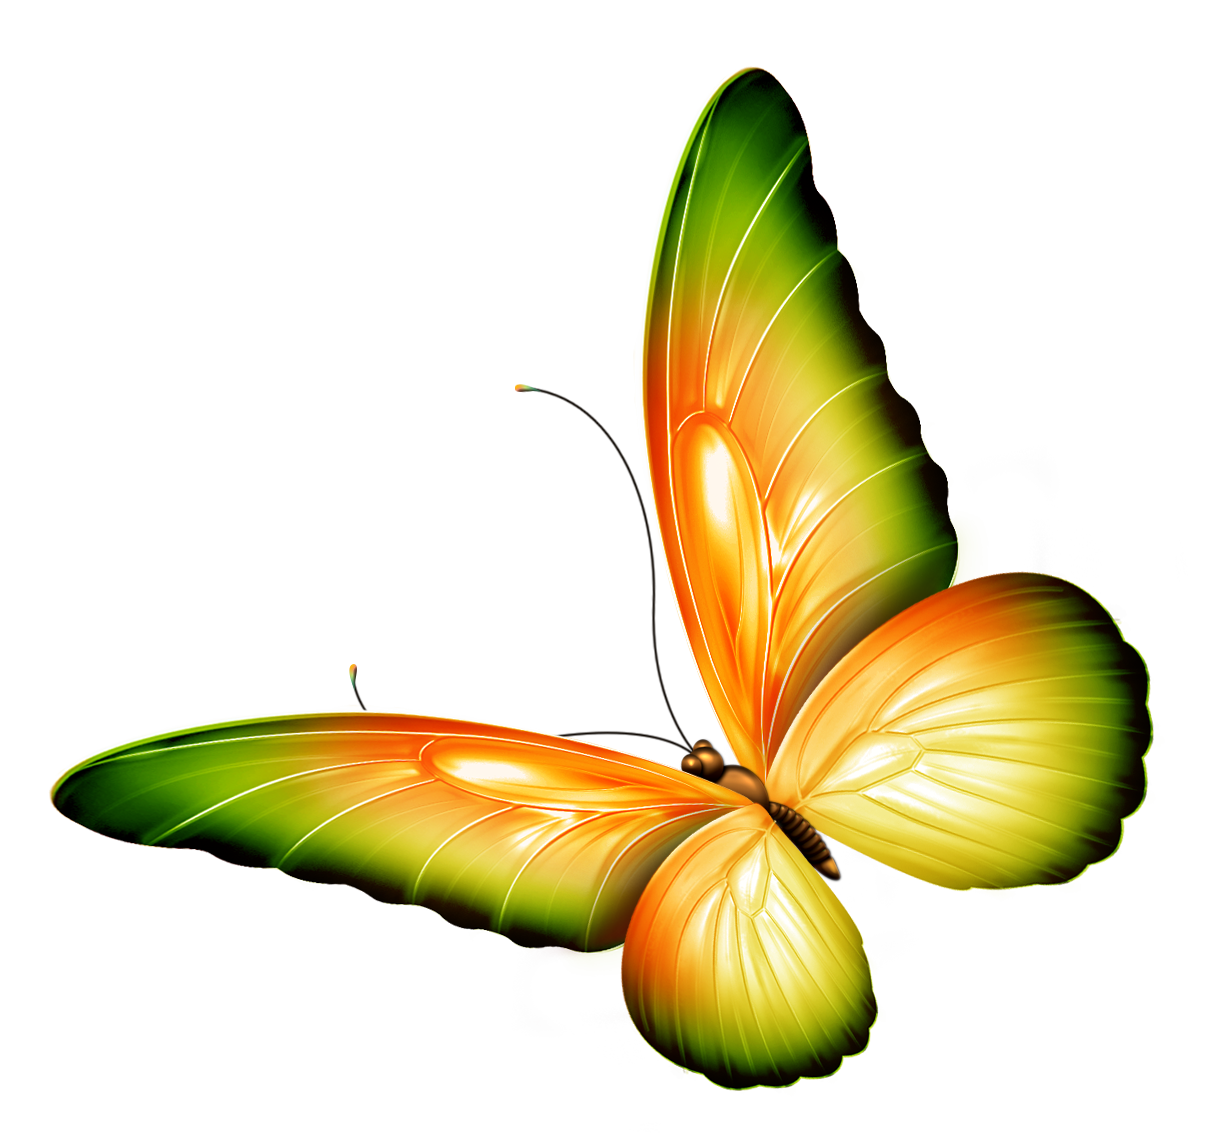 Yellow Butterfly Clipart - Cliparts.co Yellow Butterfly Clipart